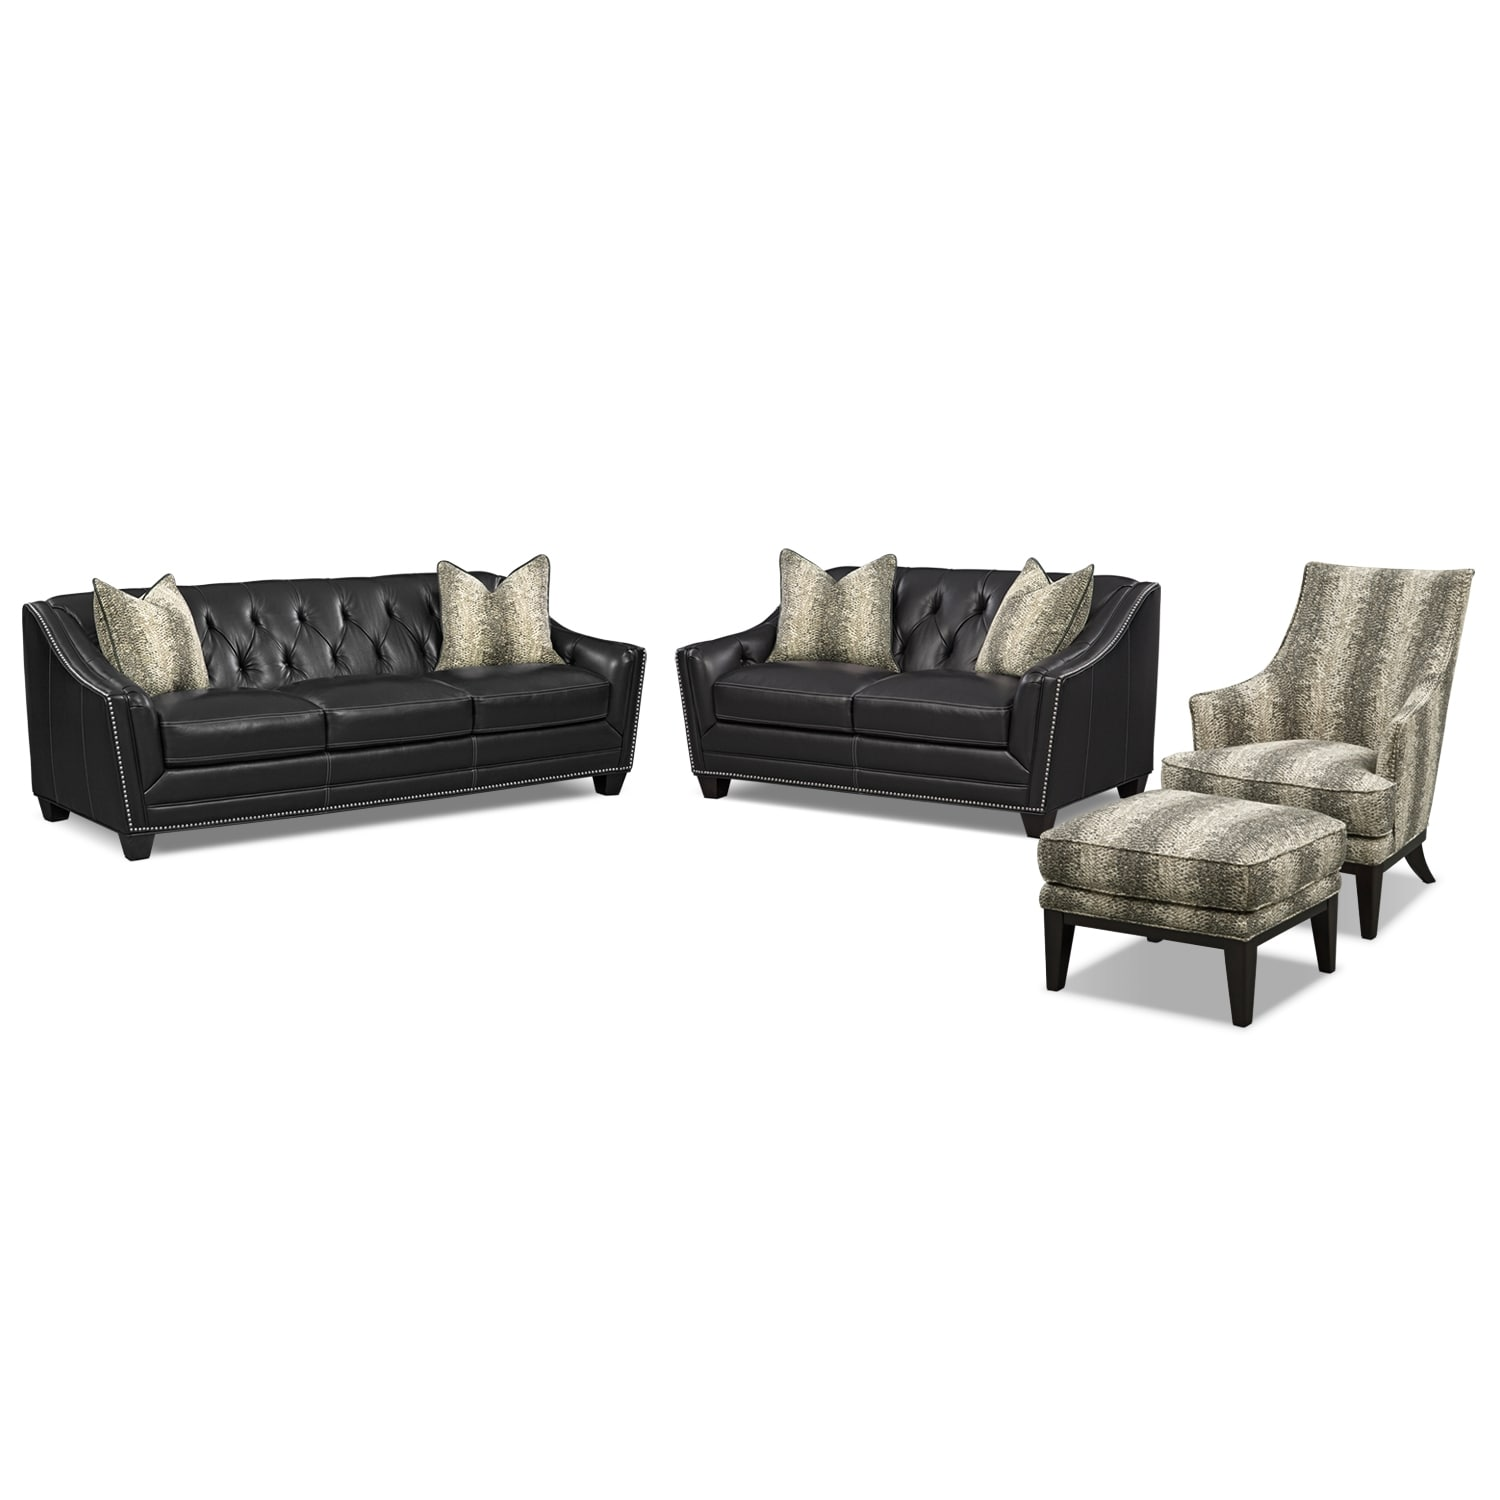 Living Room Furniture - Alexis Midnight 4 Pc. Living Room